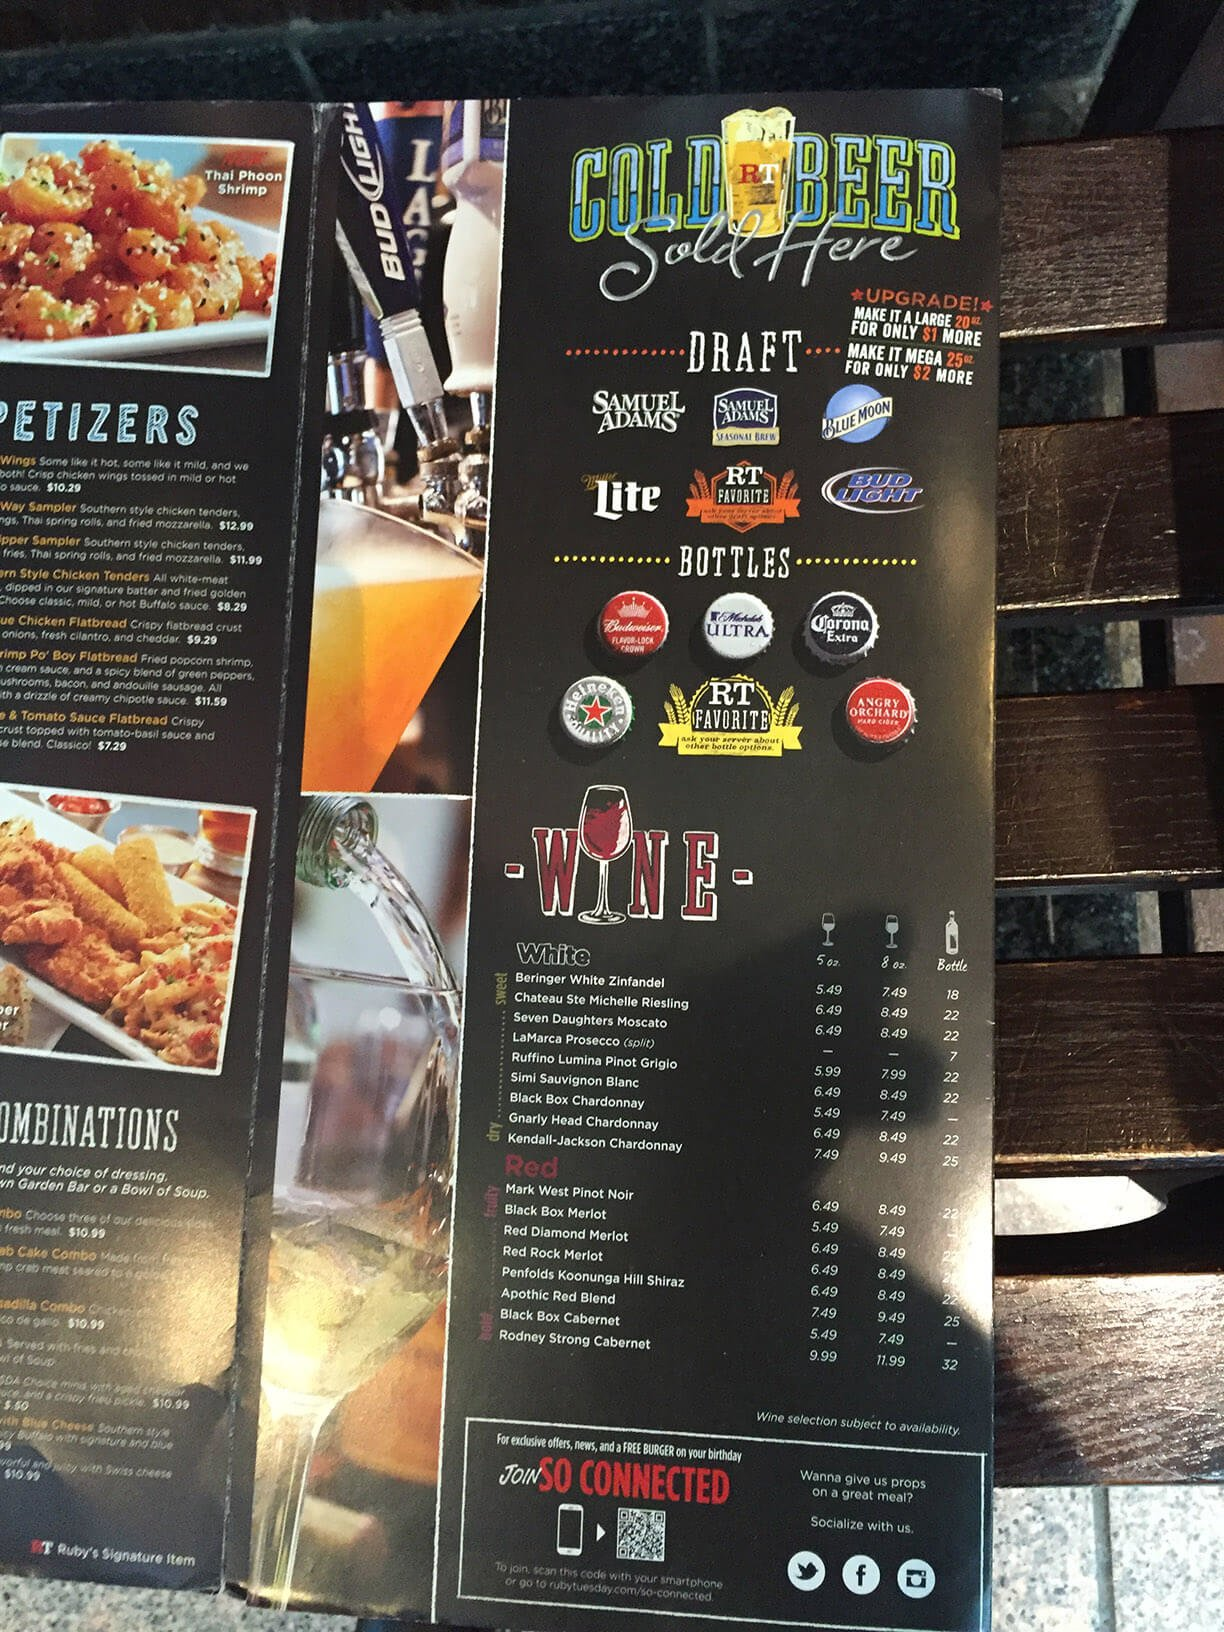 Ruby Tuesday Drink Menu With Prices